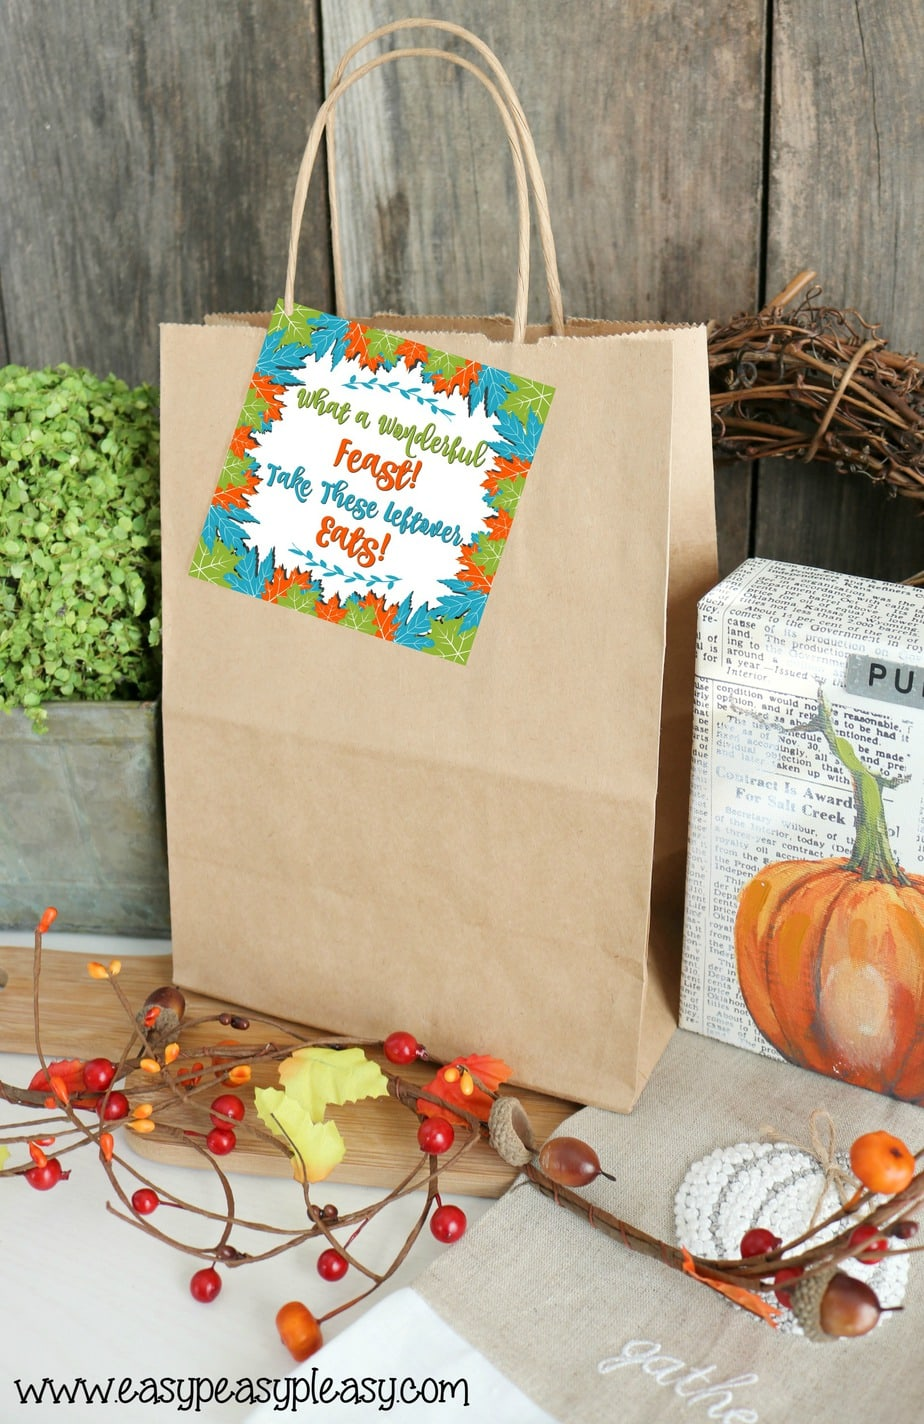 Free Printable Thanksgiving Leftovers Gift Tags at easypeasypleasy.com